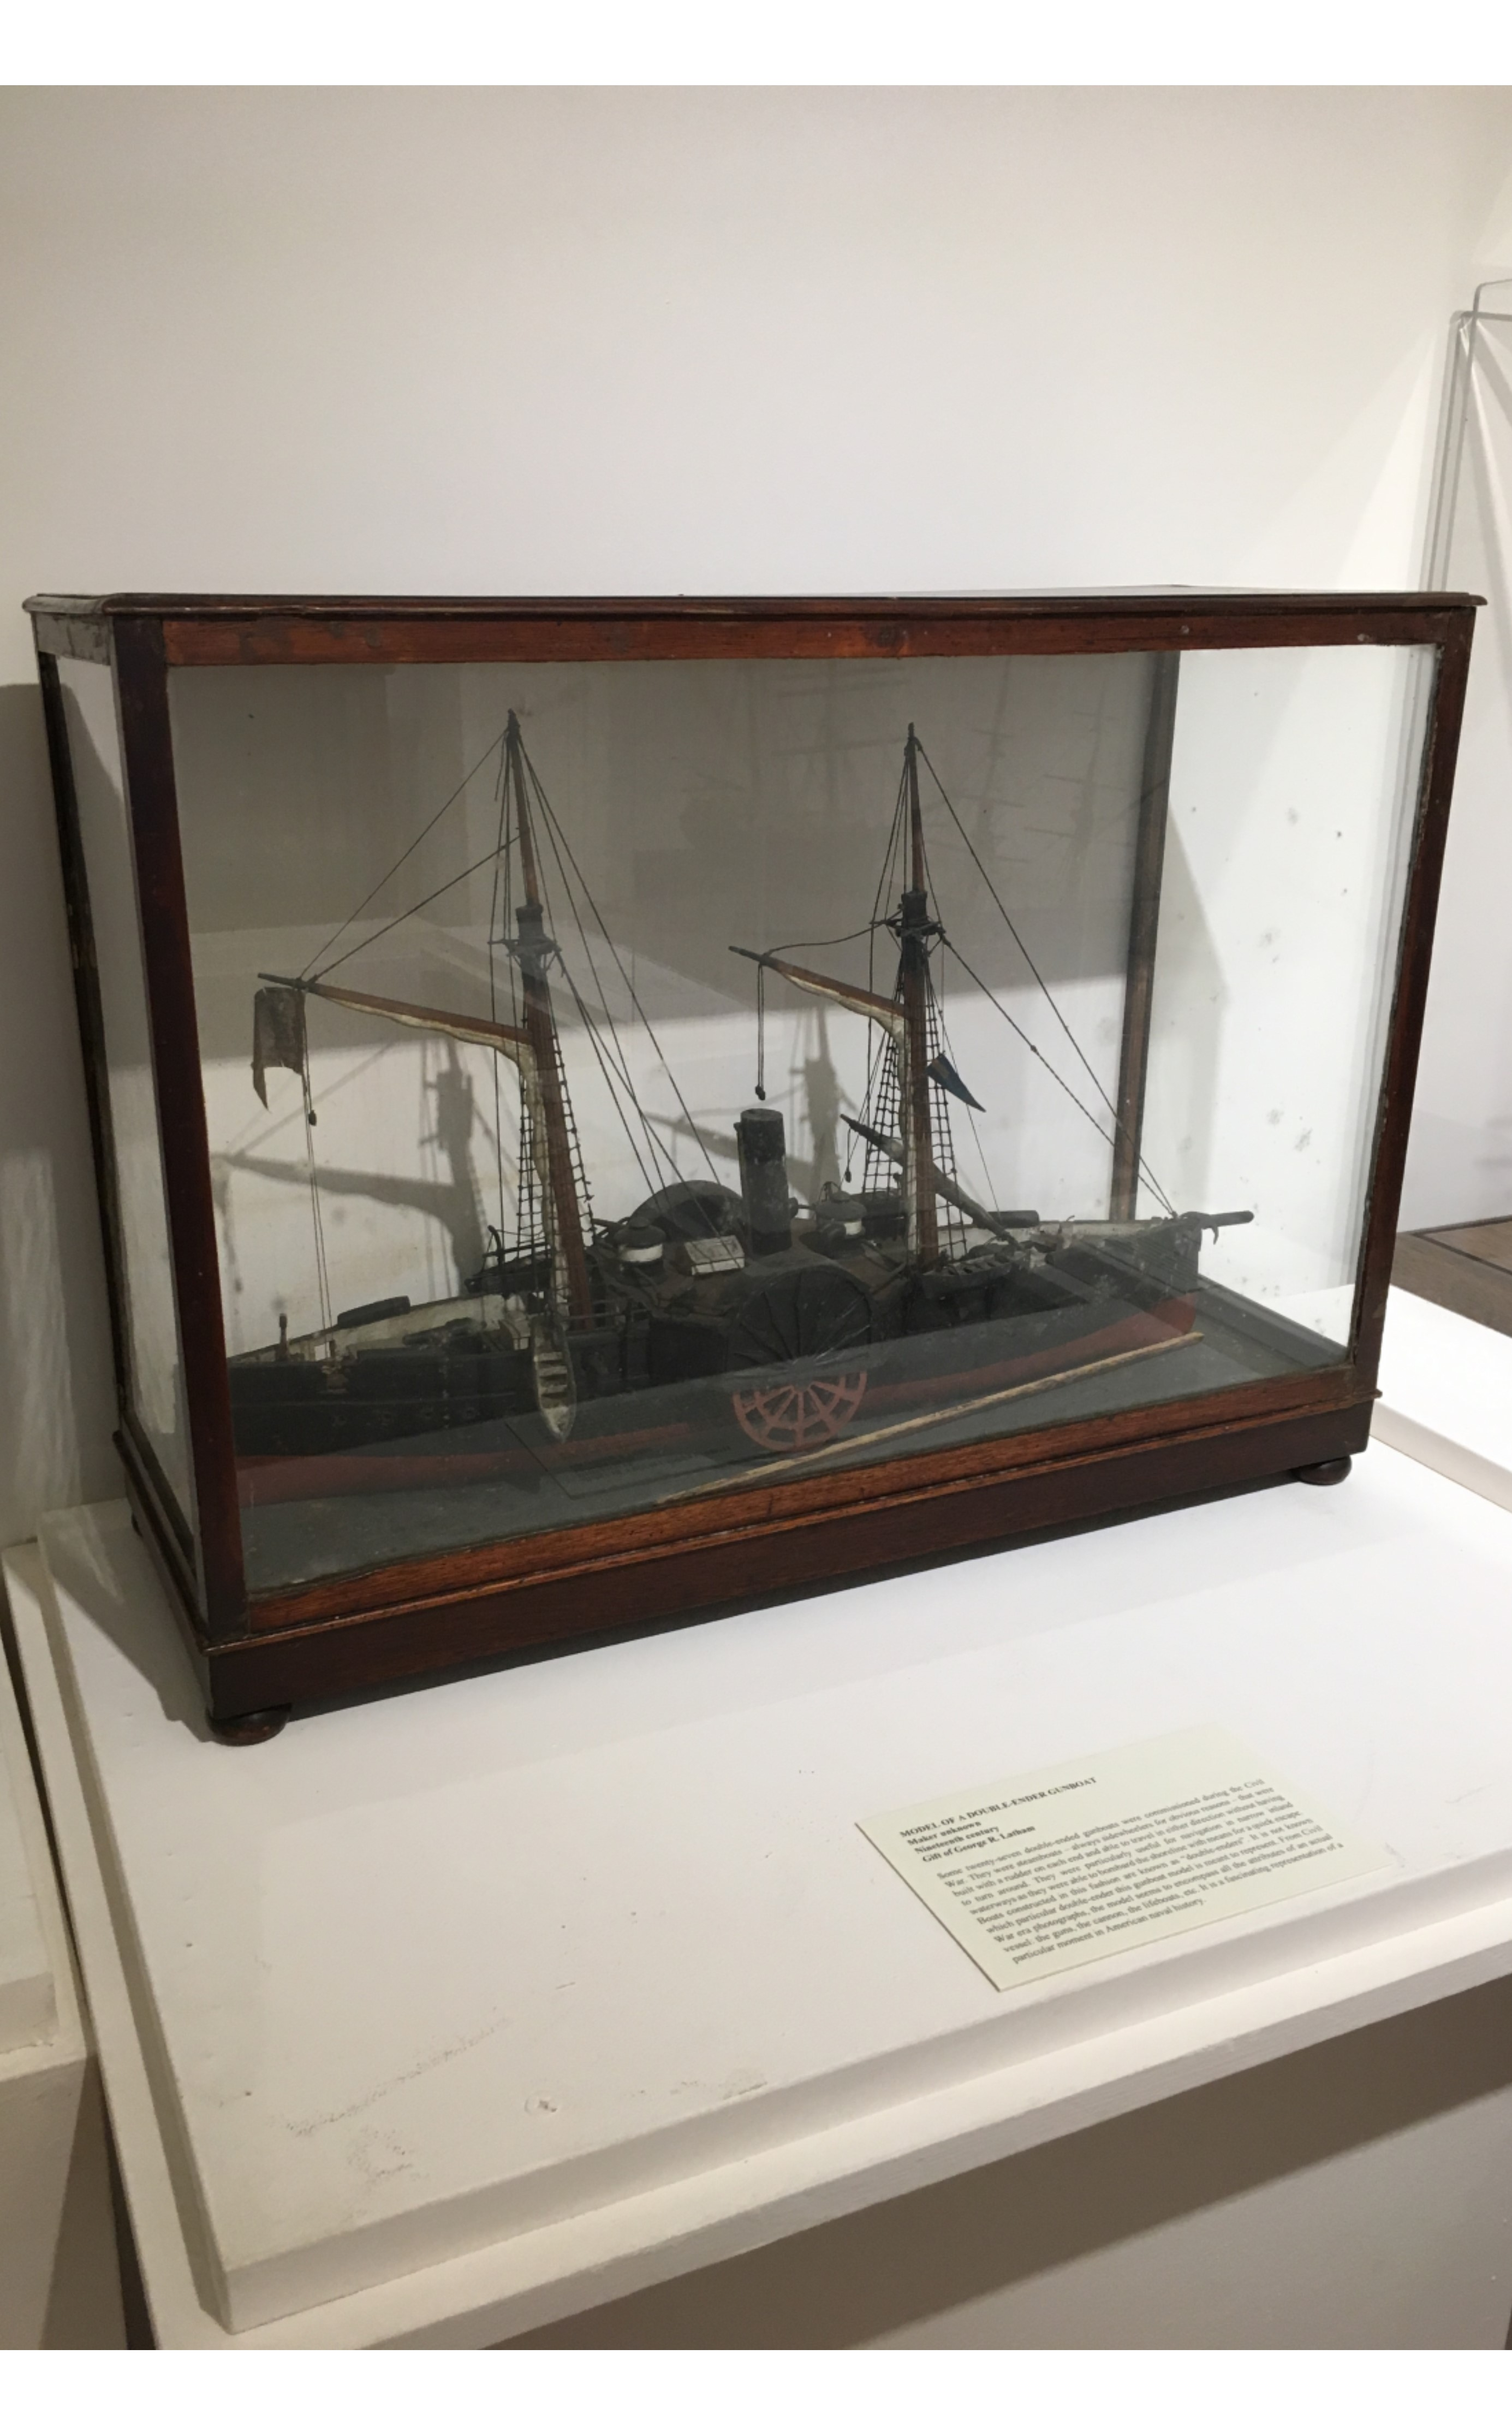 """<h3>MODEL OF A DOUBLE-ENDER GUNBOAT</em></h3> <br> <p><strong>Maker unknown</strong></p> <p><strong>Nineteenth century</strong></p> <p><strong>Gift of George R. Latham</strong></p> <br> <p>Some twenty-seven double-ended gunboats were commissioned during the Civil War. They were steamboats – always sidewheelers for obvious reasons – that were built with a rudder on each end and able to travel in either direction without having to turn around. They were particularly useful for navigation in narrow inland waterways as they were able to bombard the shoreline with means for a quick escape. Boats constructed in this fashion are known as """"double-enders"""". It is not known which particular double-ender this gunboat model is meant to represent. From Civil War era photographs, the model seems to encompass all the attributes of an actual vessel: the guns, the cannon, the lifeboats, etc. It is a fascinating representation of a particular moment in American naval history.</p>"""